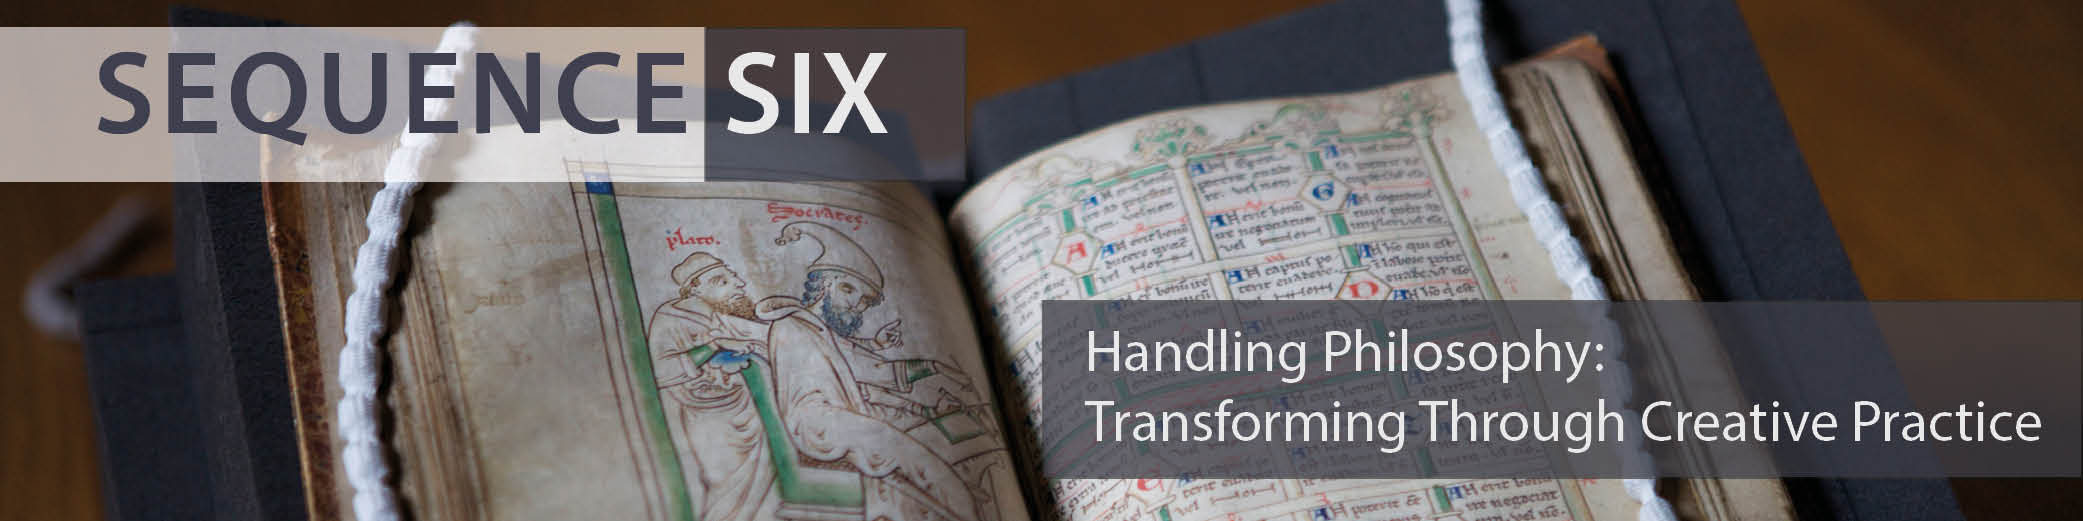 SEQUENCE Six: Handling Philosophy – Transforming through creative practice